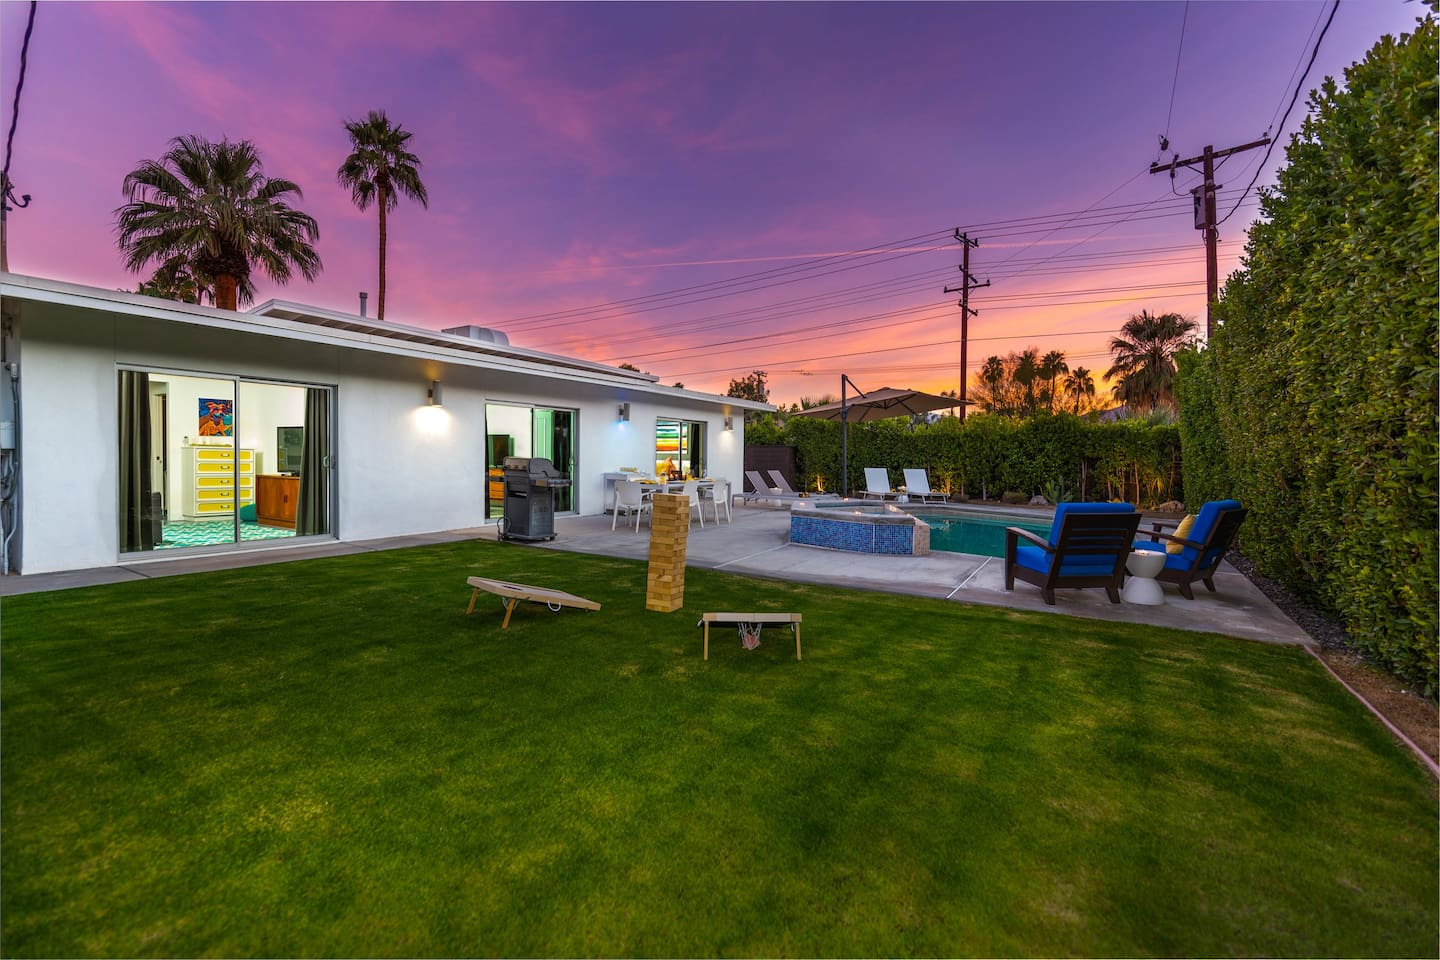 Your Palm Springs vacation awaits